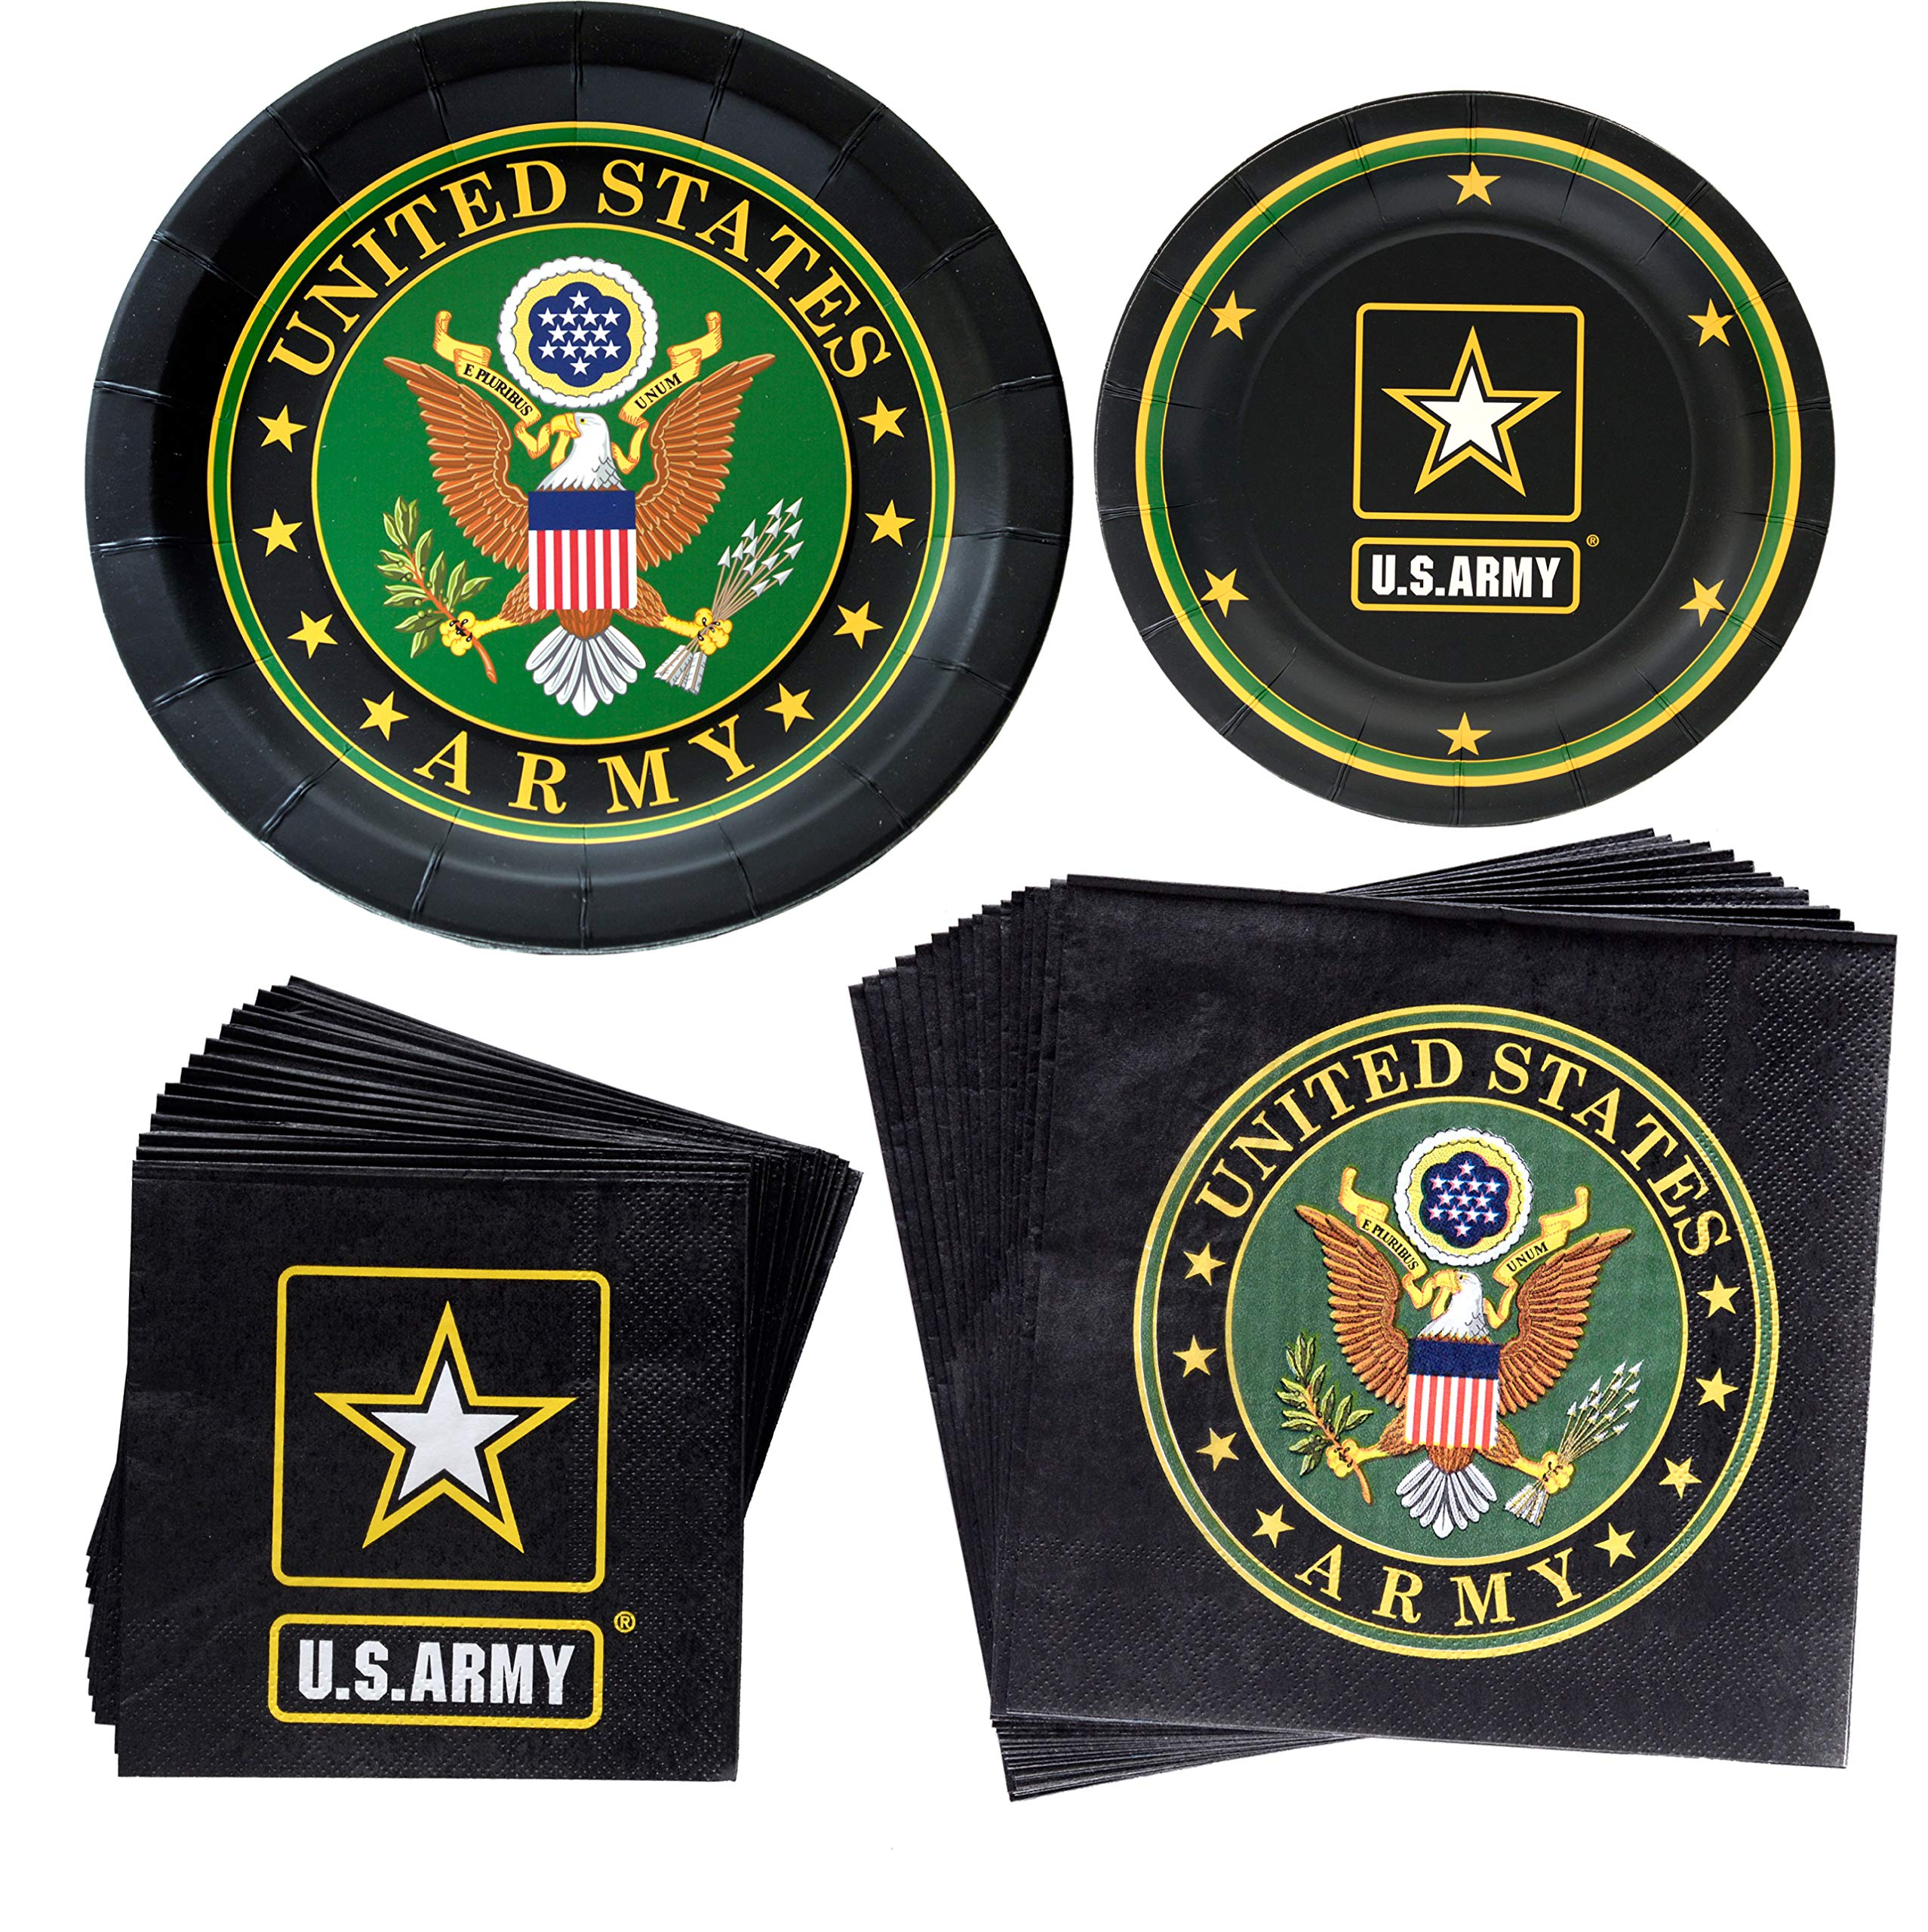 Havercamp US Army Party Bundle   Dinner & Dessert Plates, Luncheon & Beverage Napkins, Balloon   Great for Homecoming Party, Military Inspired Event, American Hero Themed Occasion